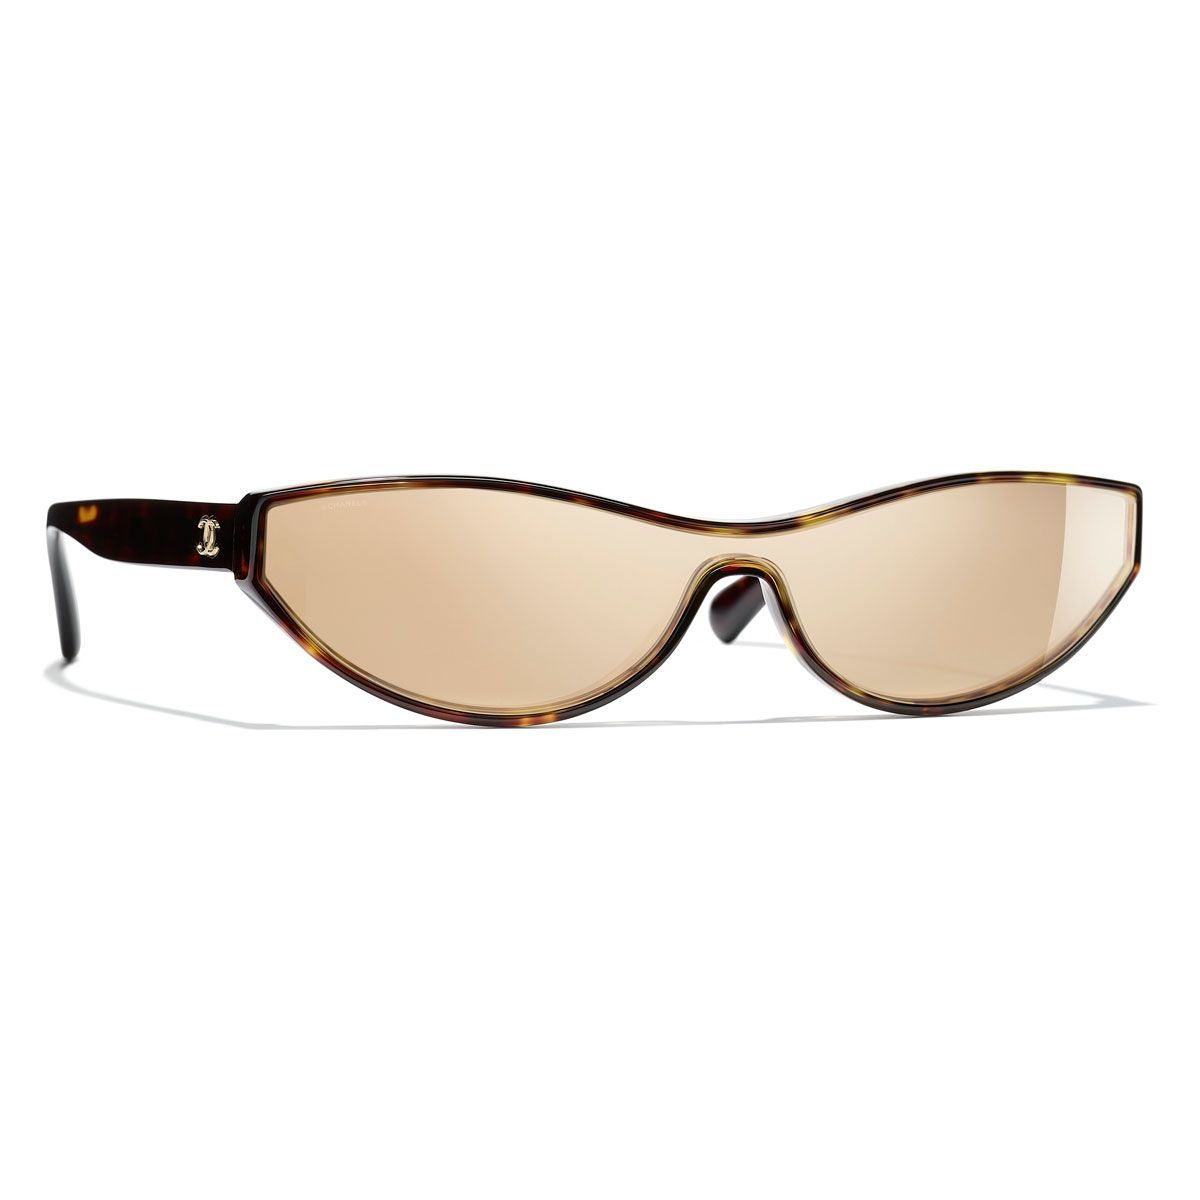 Cat Eye Sunglasses 337.5 Sunglasses